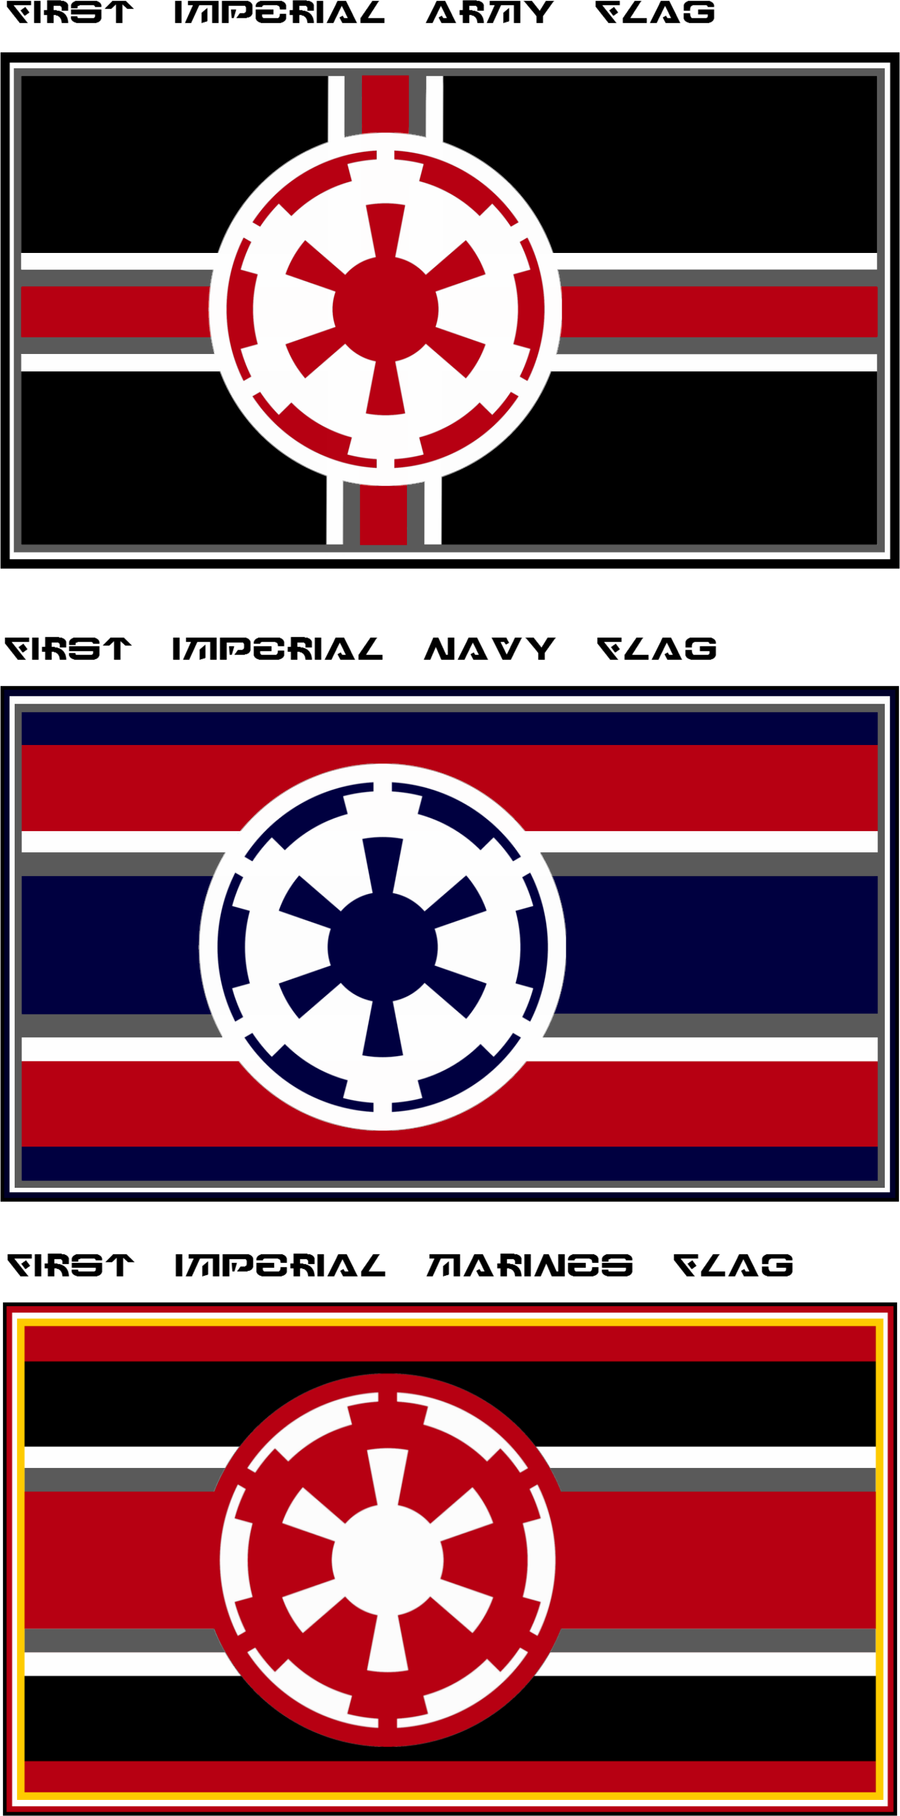 Imperial Military Flags By Viperaviator On Deviantart Star Wars Vehicles Star Wars Rpg Star Wars Poster